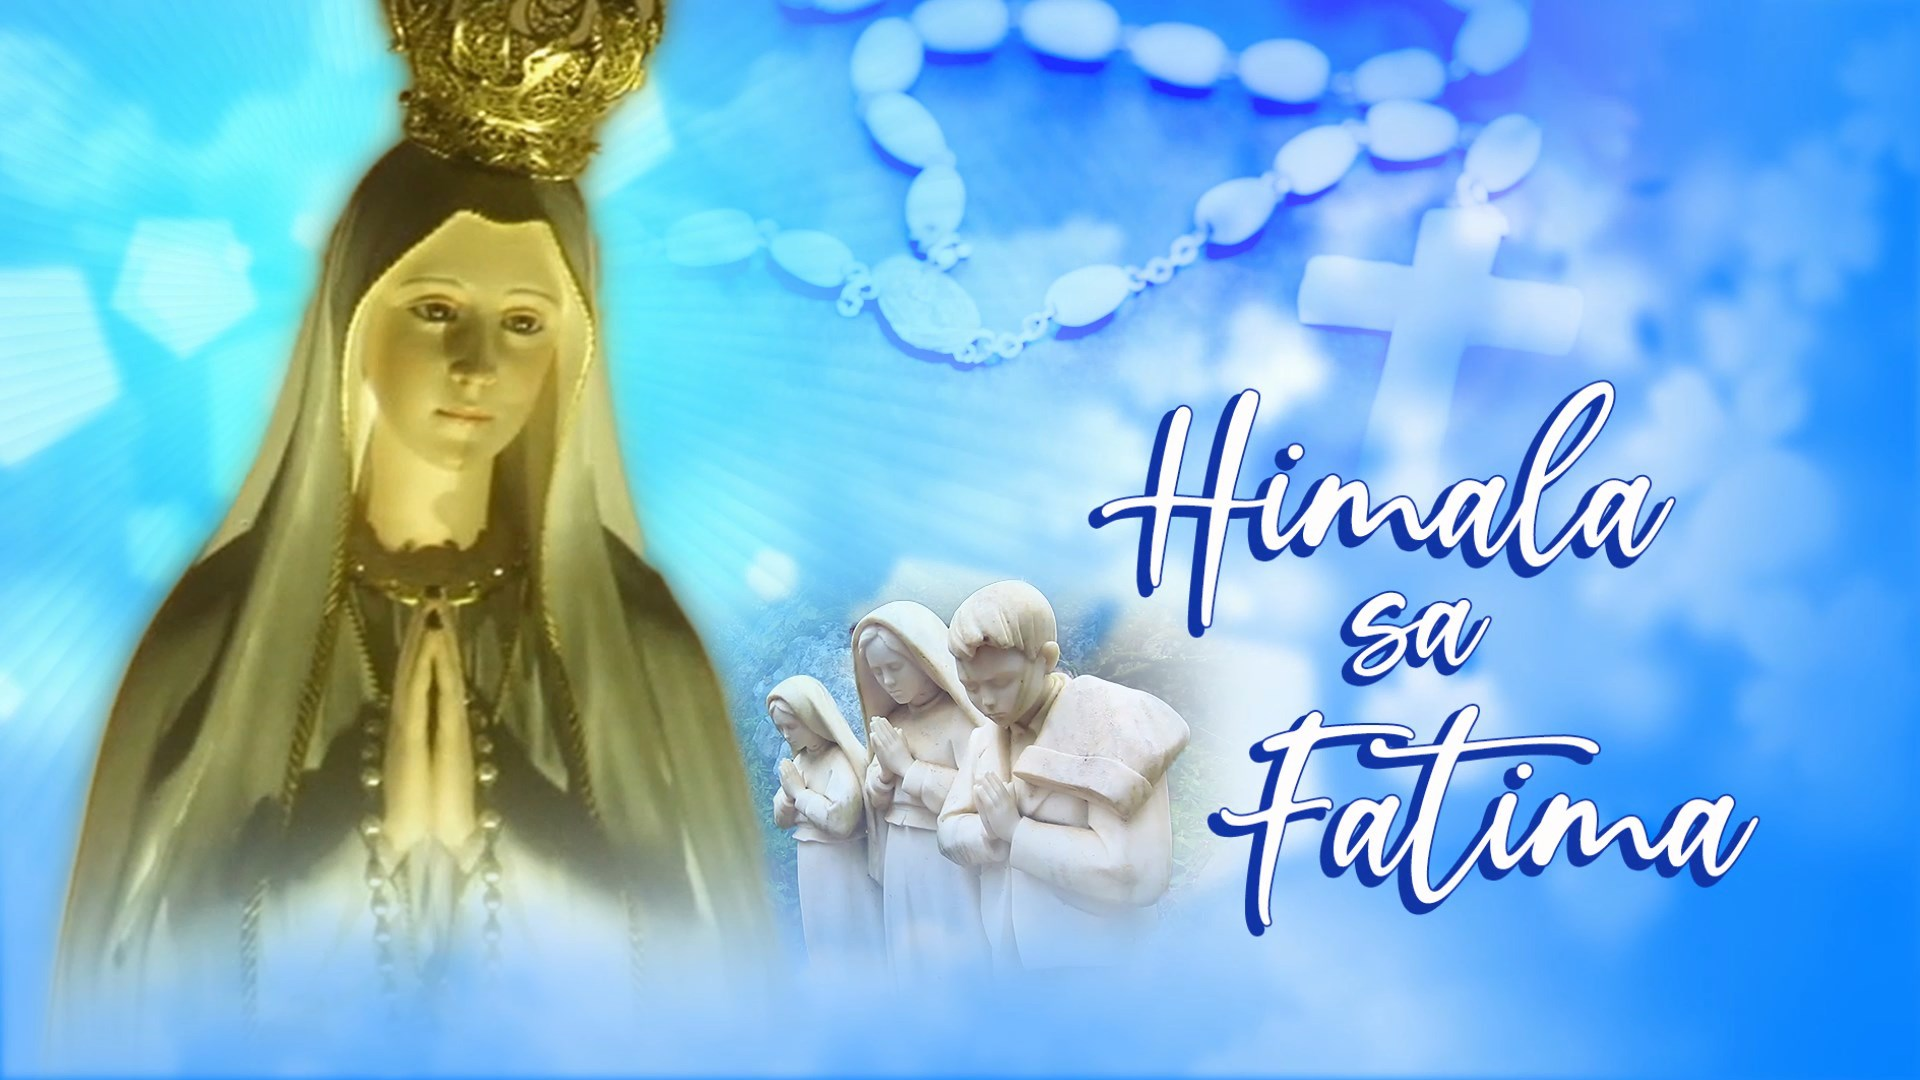 _DZMM will air the special documentary Himala sa Fatima on Sunday, October 13 at 9pm